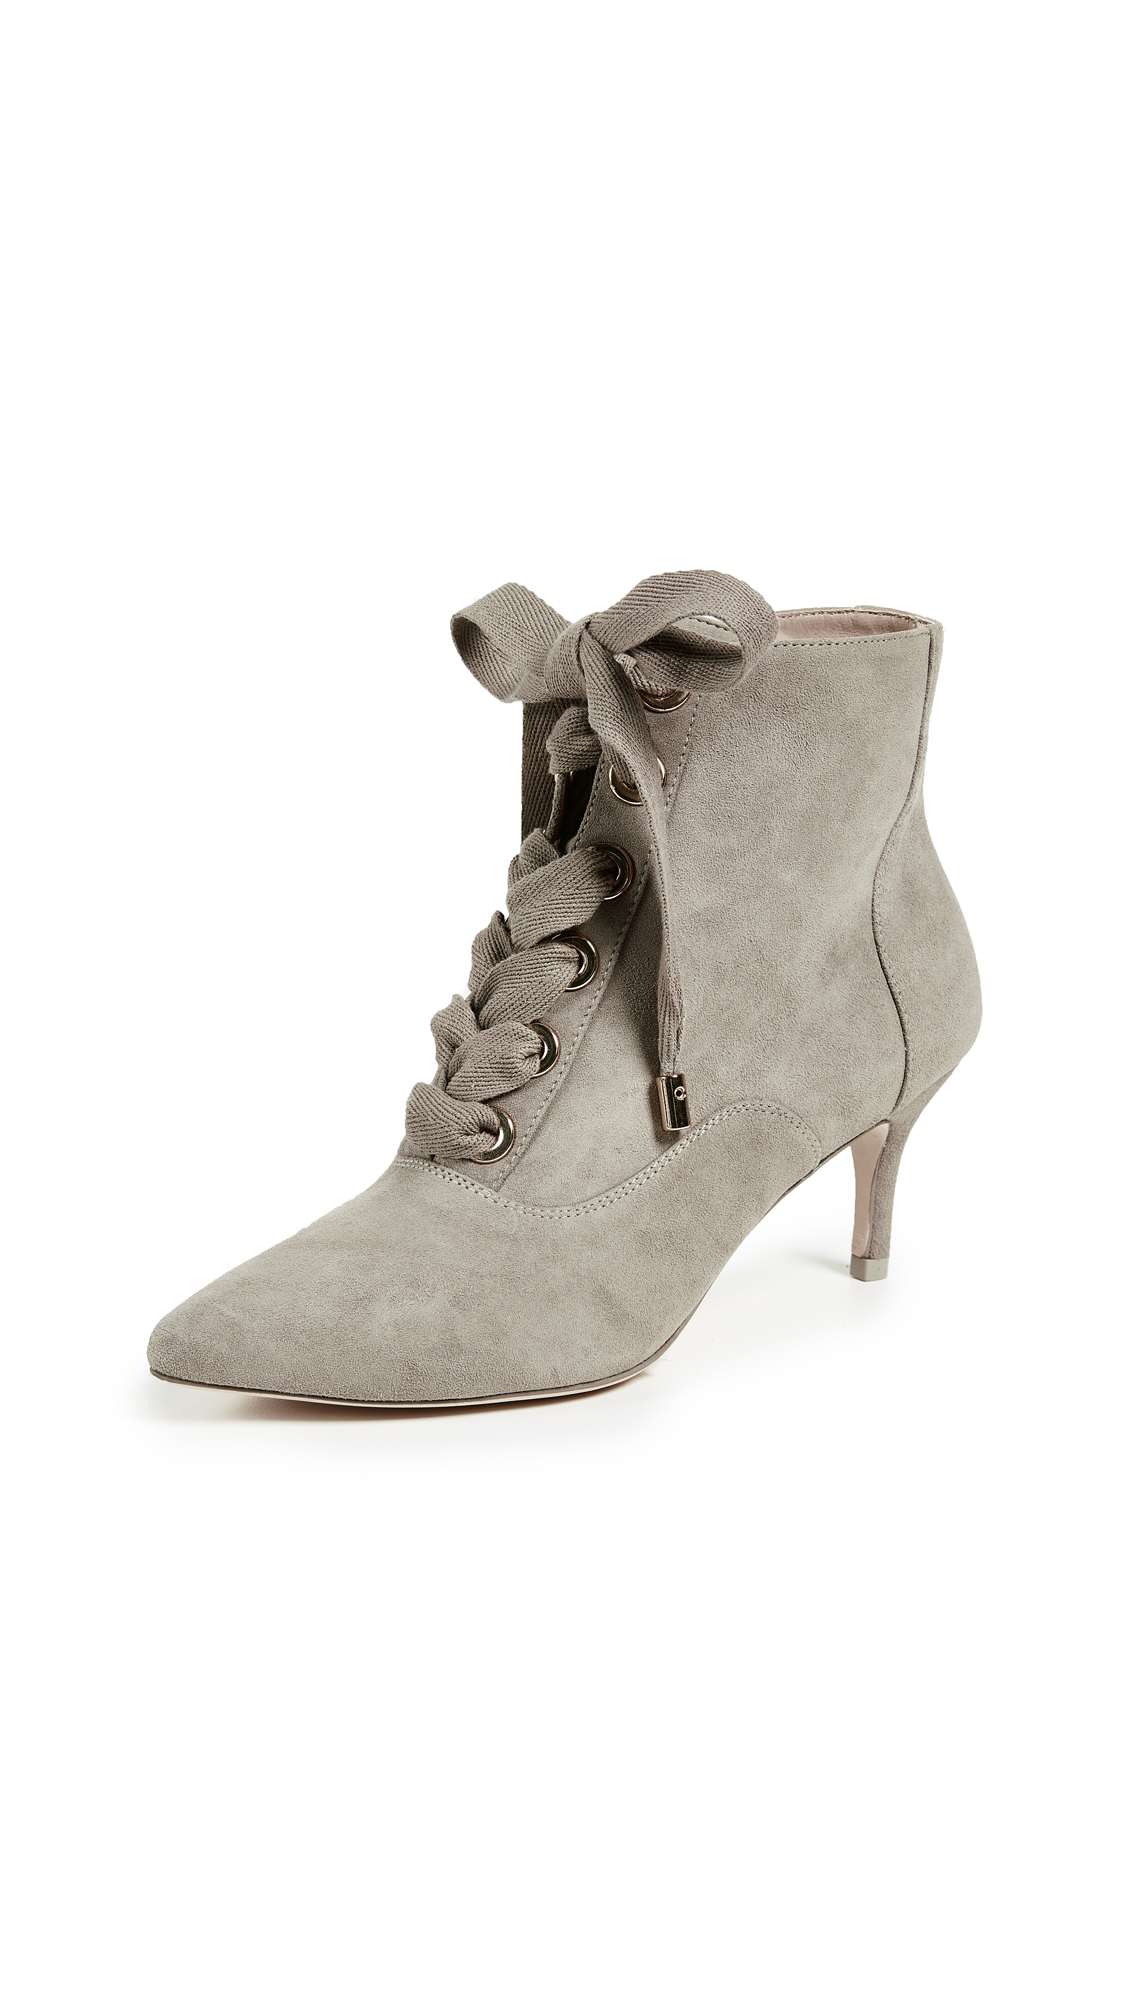 Zimmermann Lace Up Ankle Booties